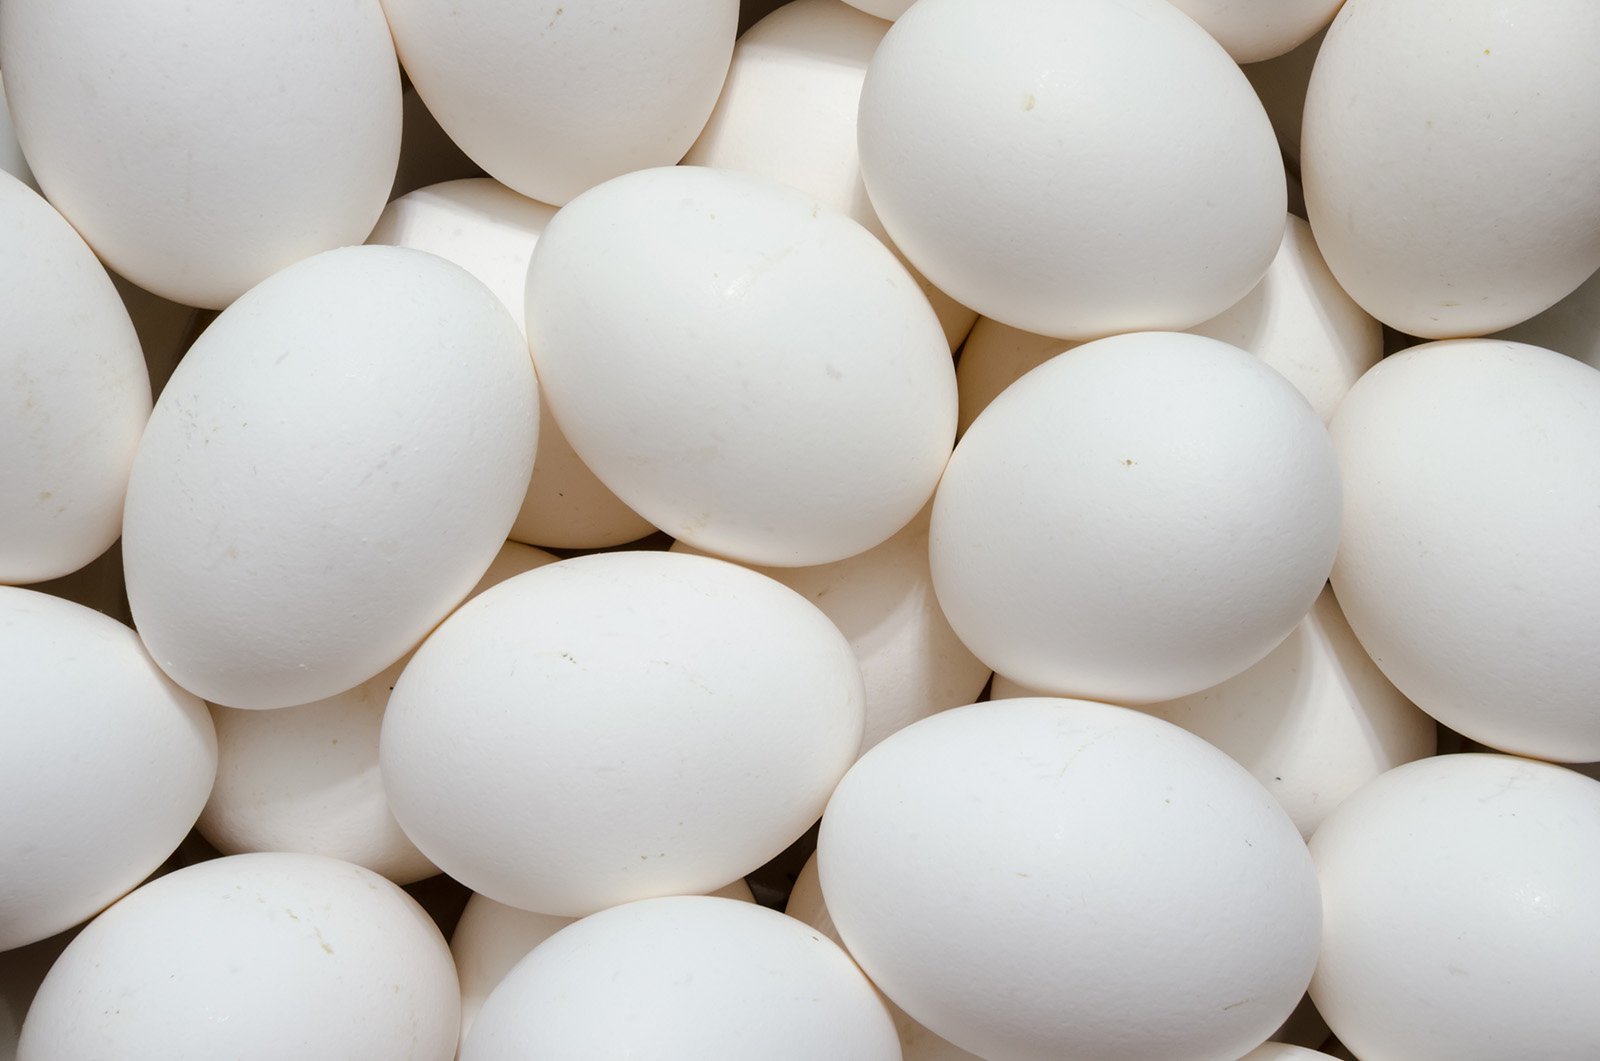 How much protein is in egg white?